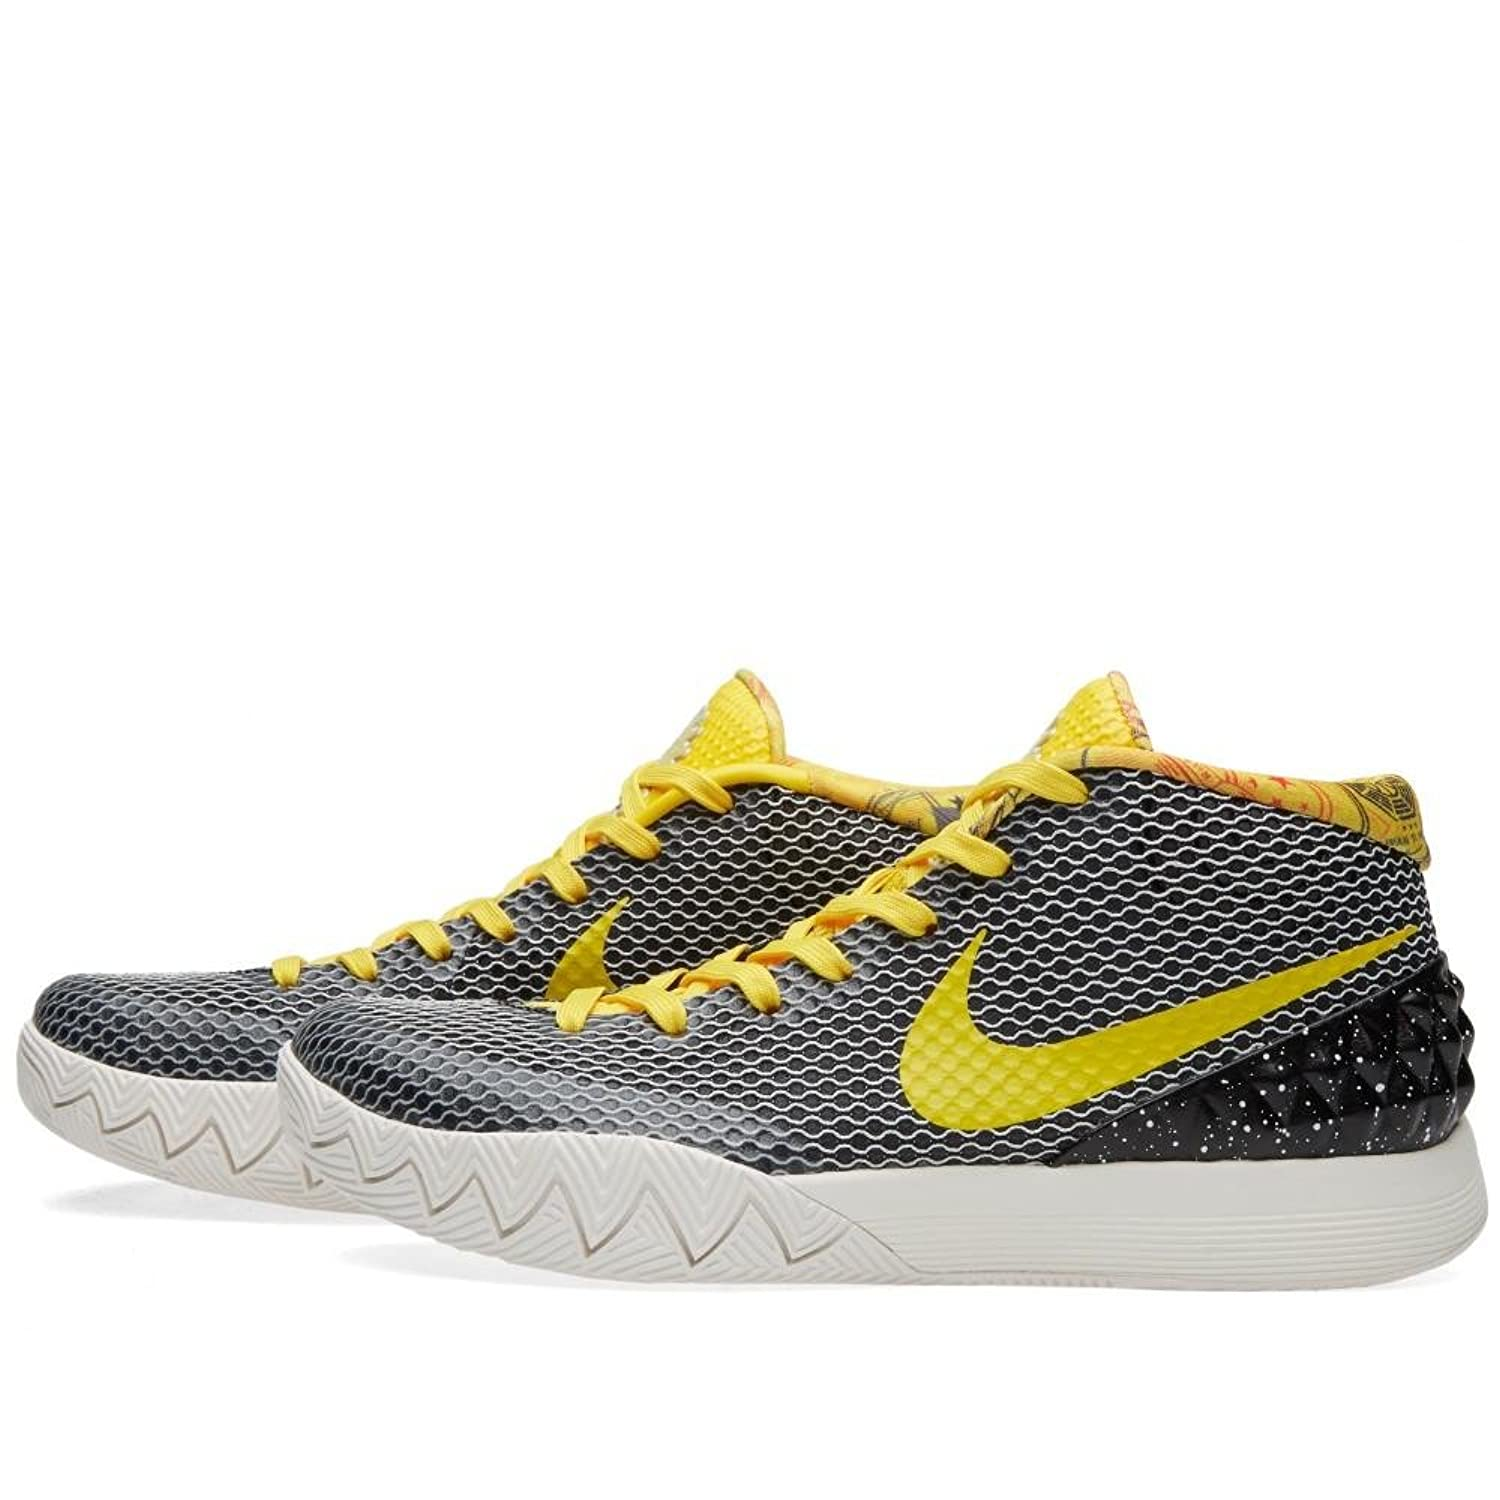 e60644e0c97be discount code for nike kyrie 1 black tour yellow sail light bone ...